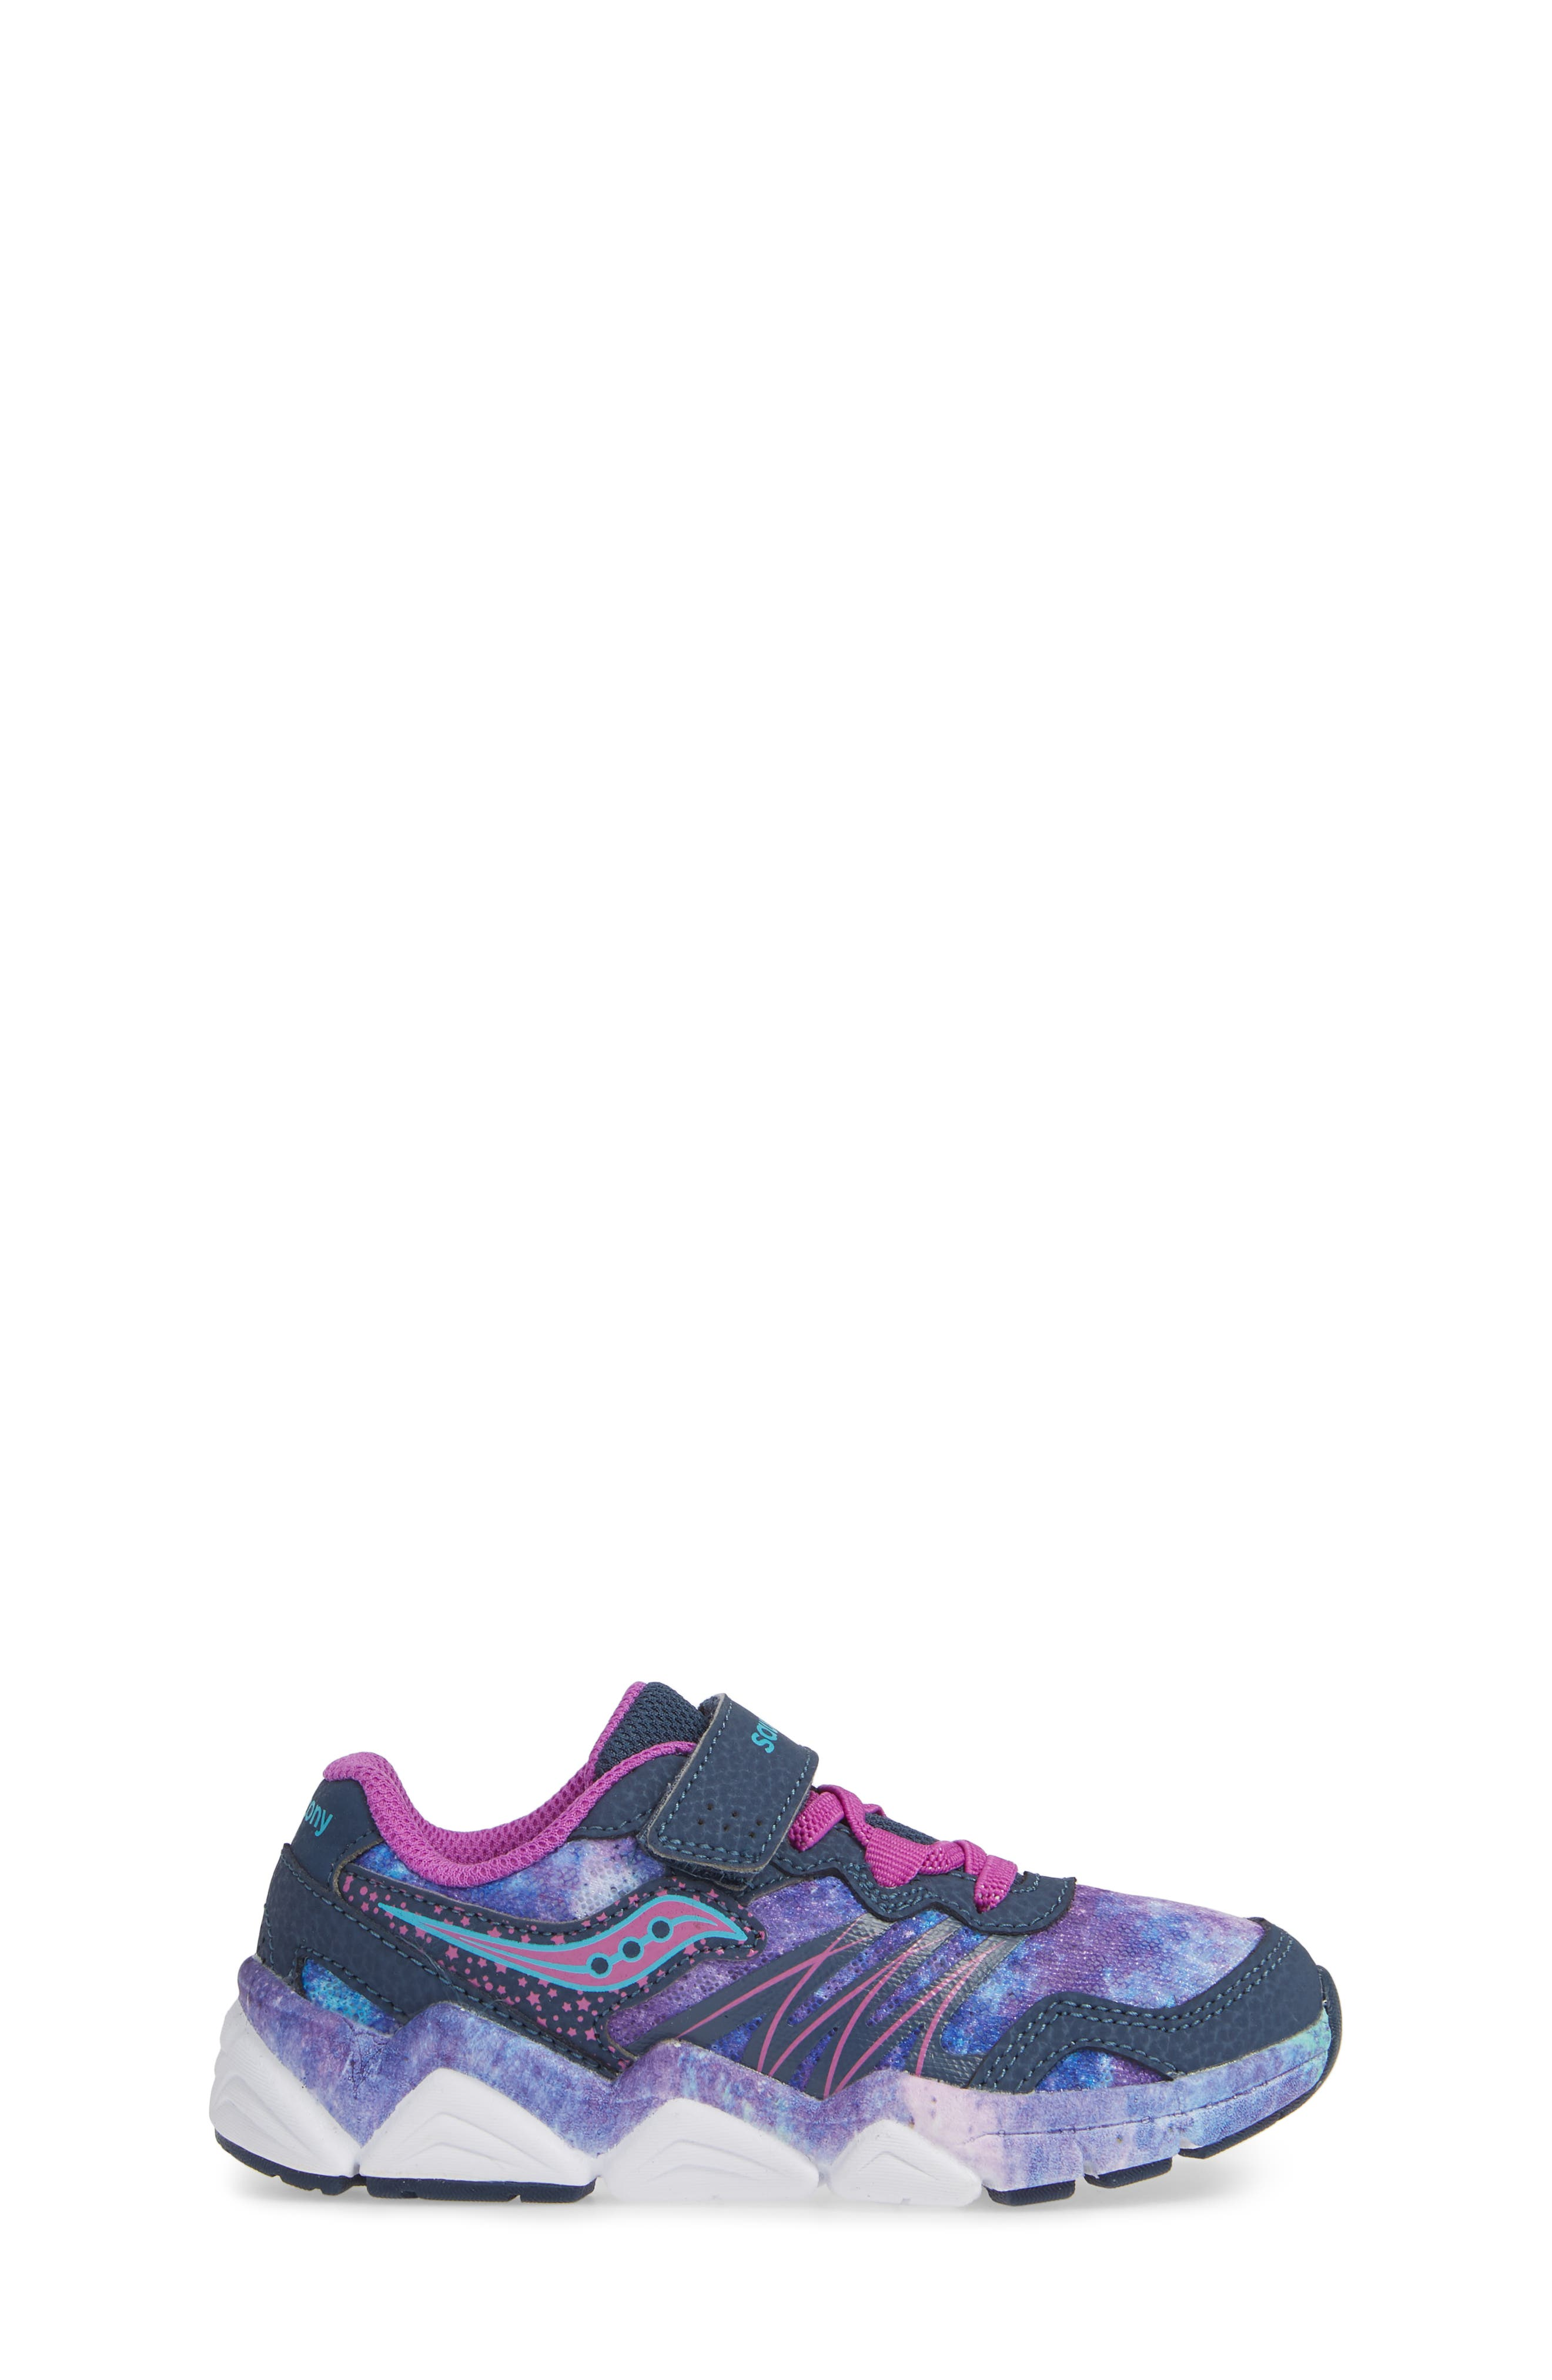 Kotaro Flash Sneaker,                             Alternate thumbnail 3, color,                             PURPLE LEATHER/ MESH